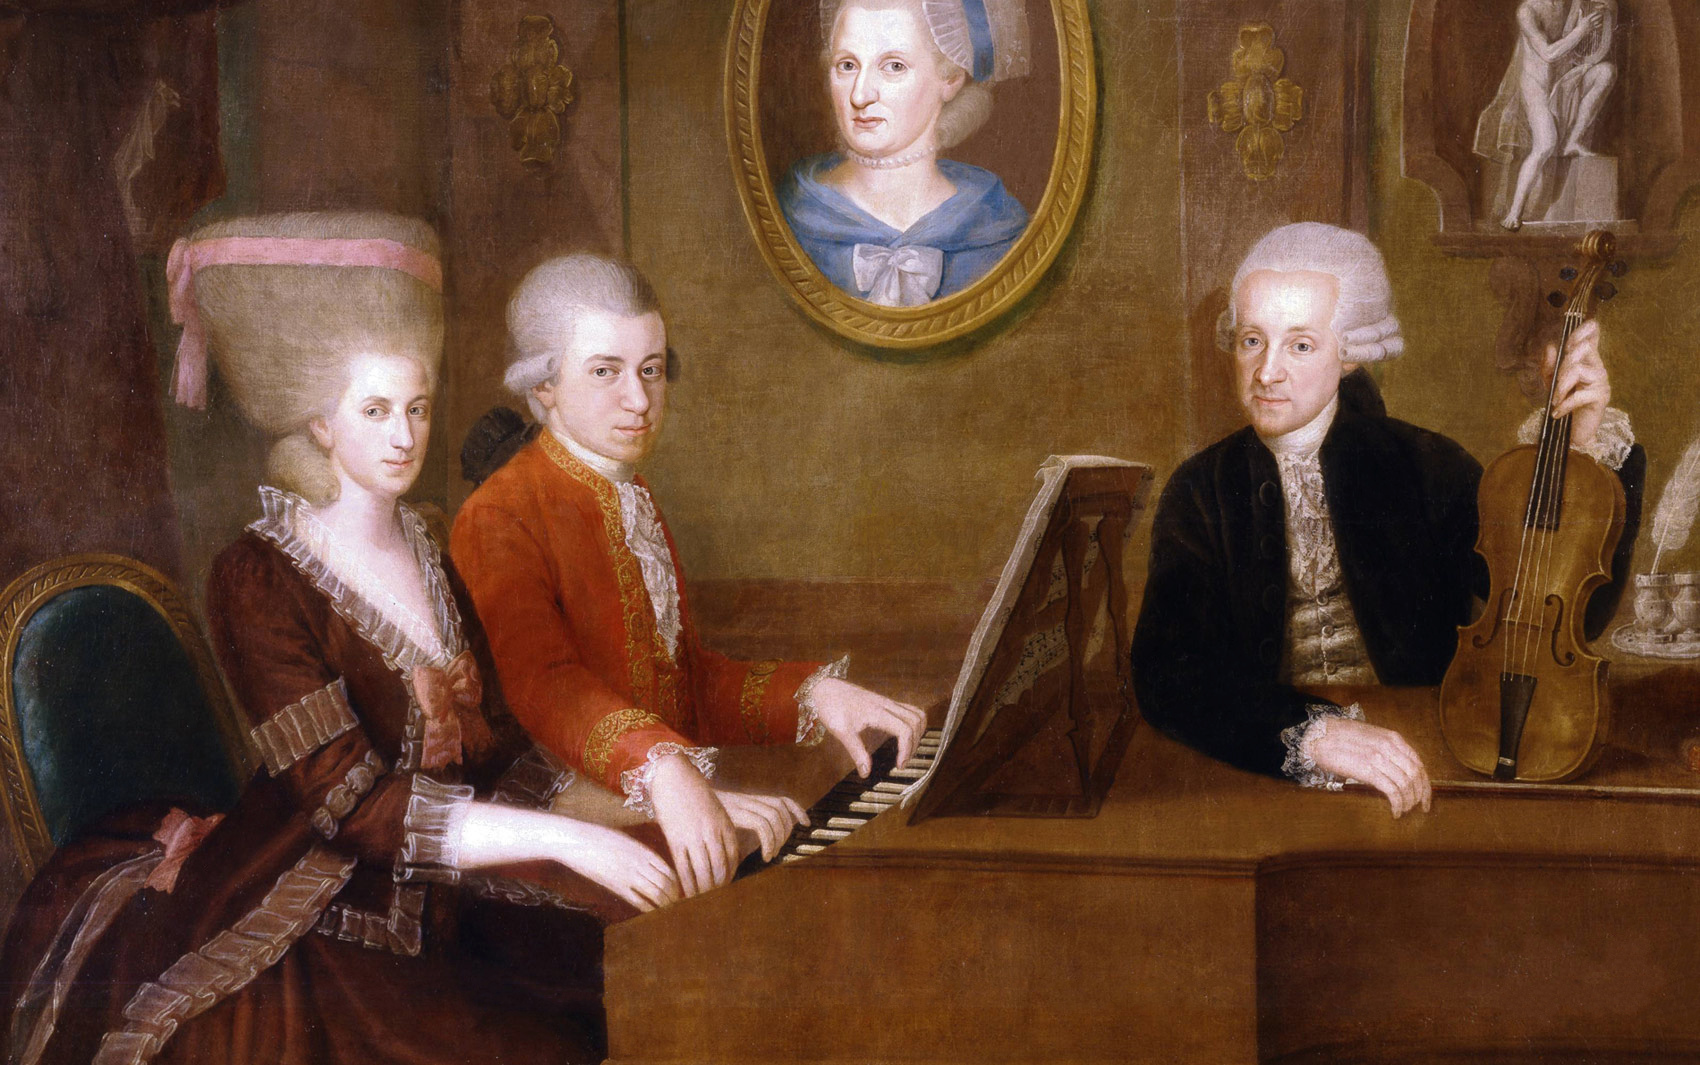 The Mozart family c. 1780. The portrait on the wall is